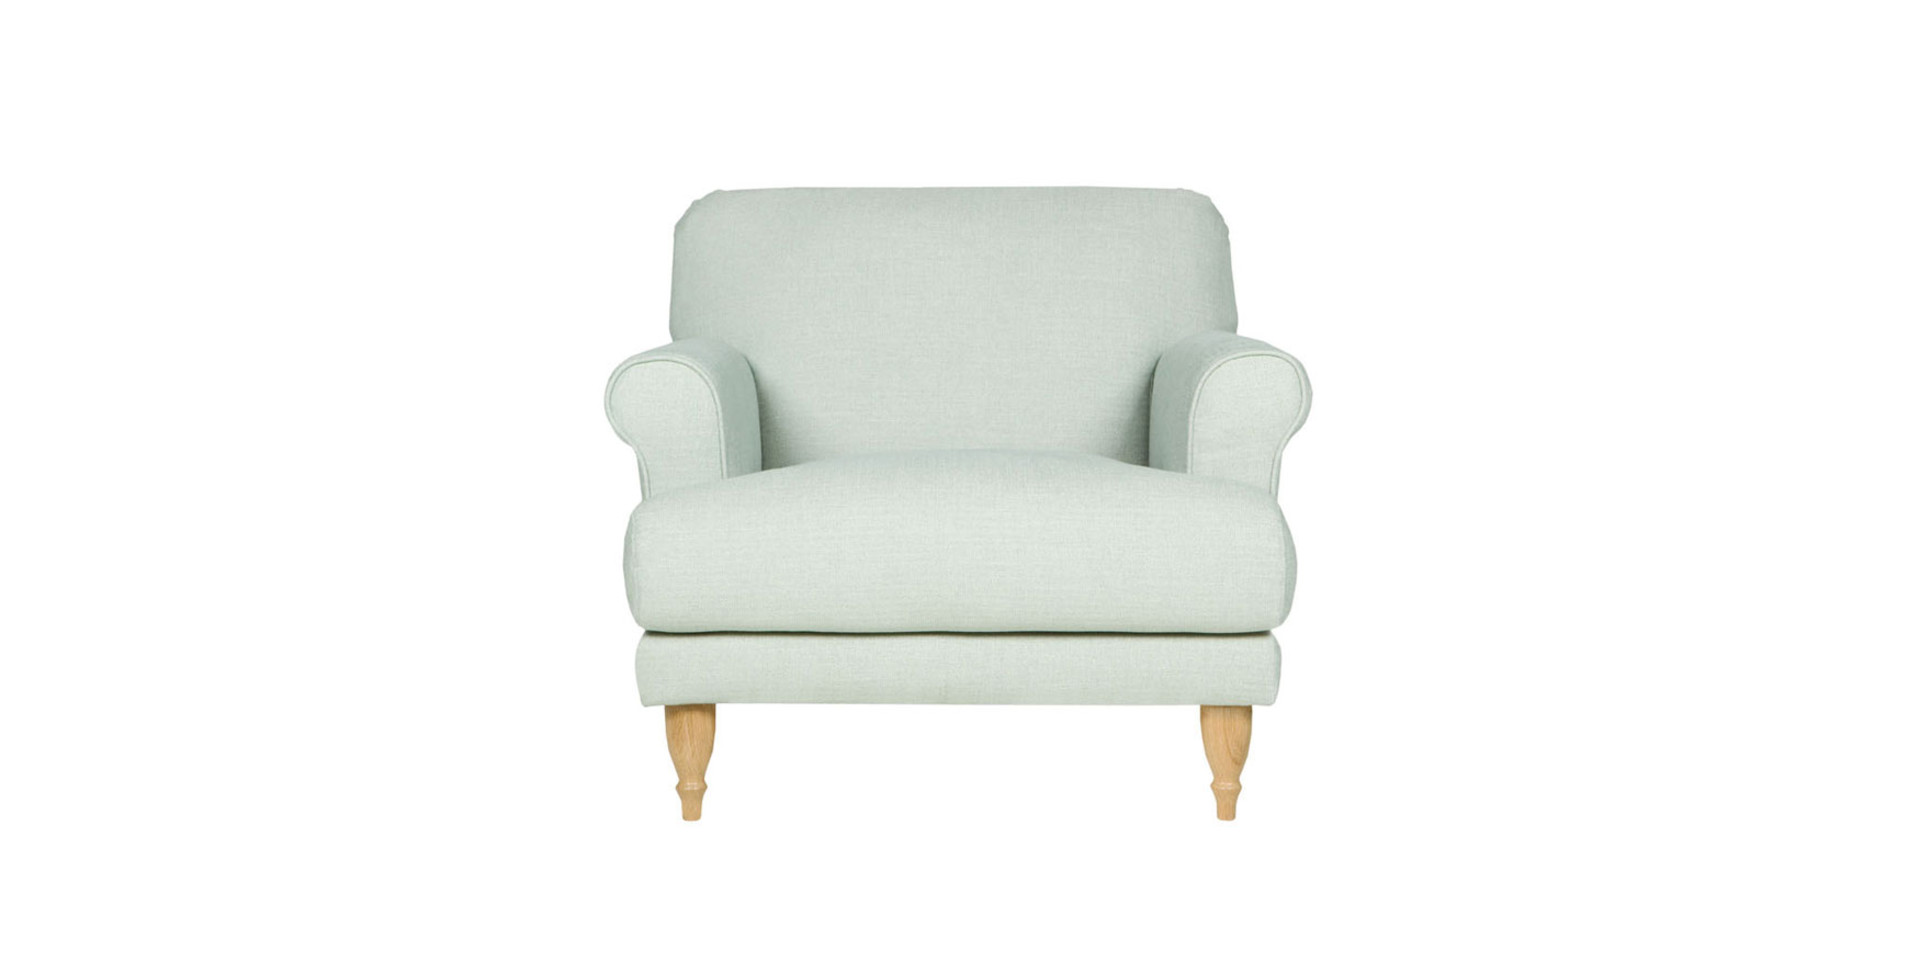 sits-rasmus-fauteuil-9